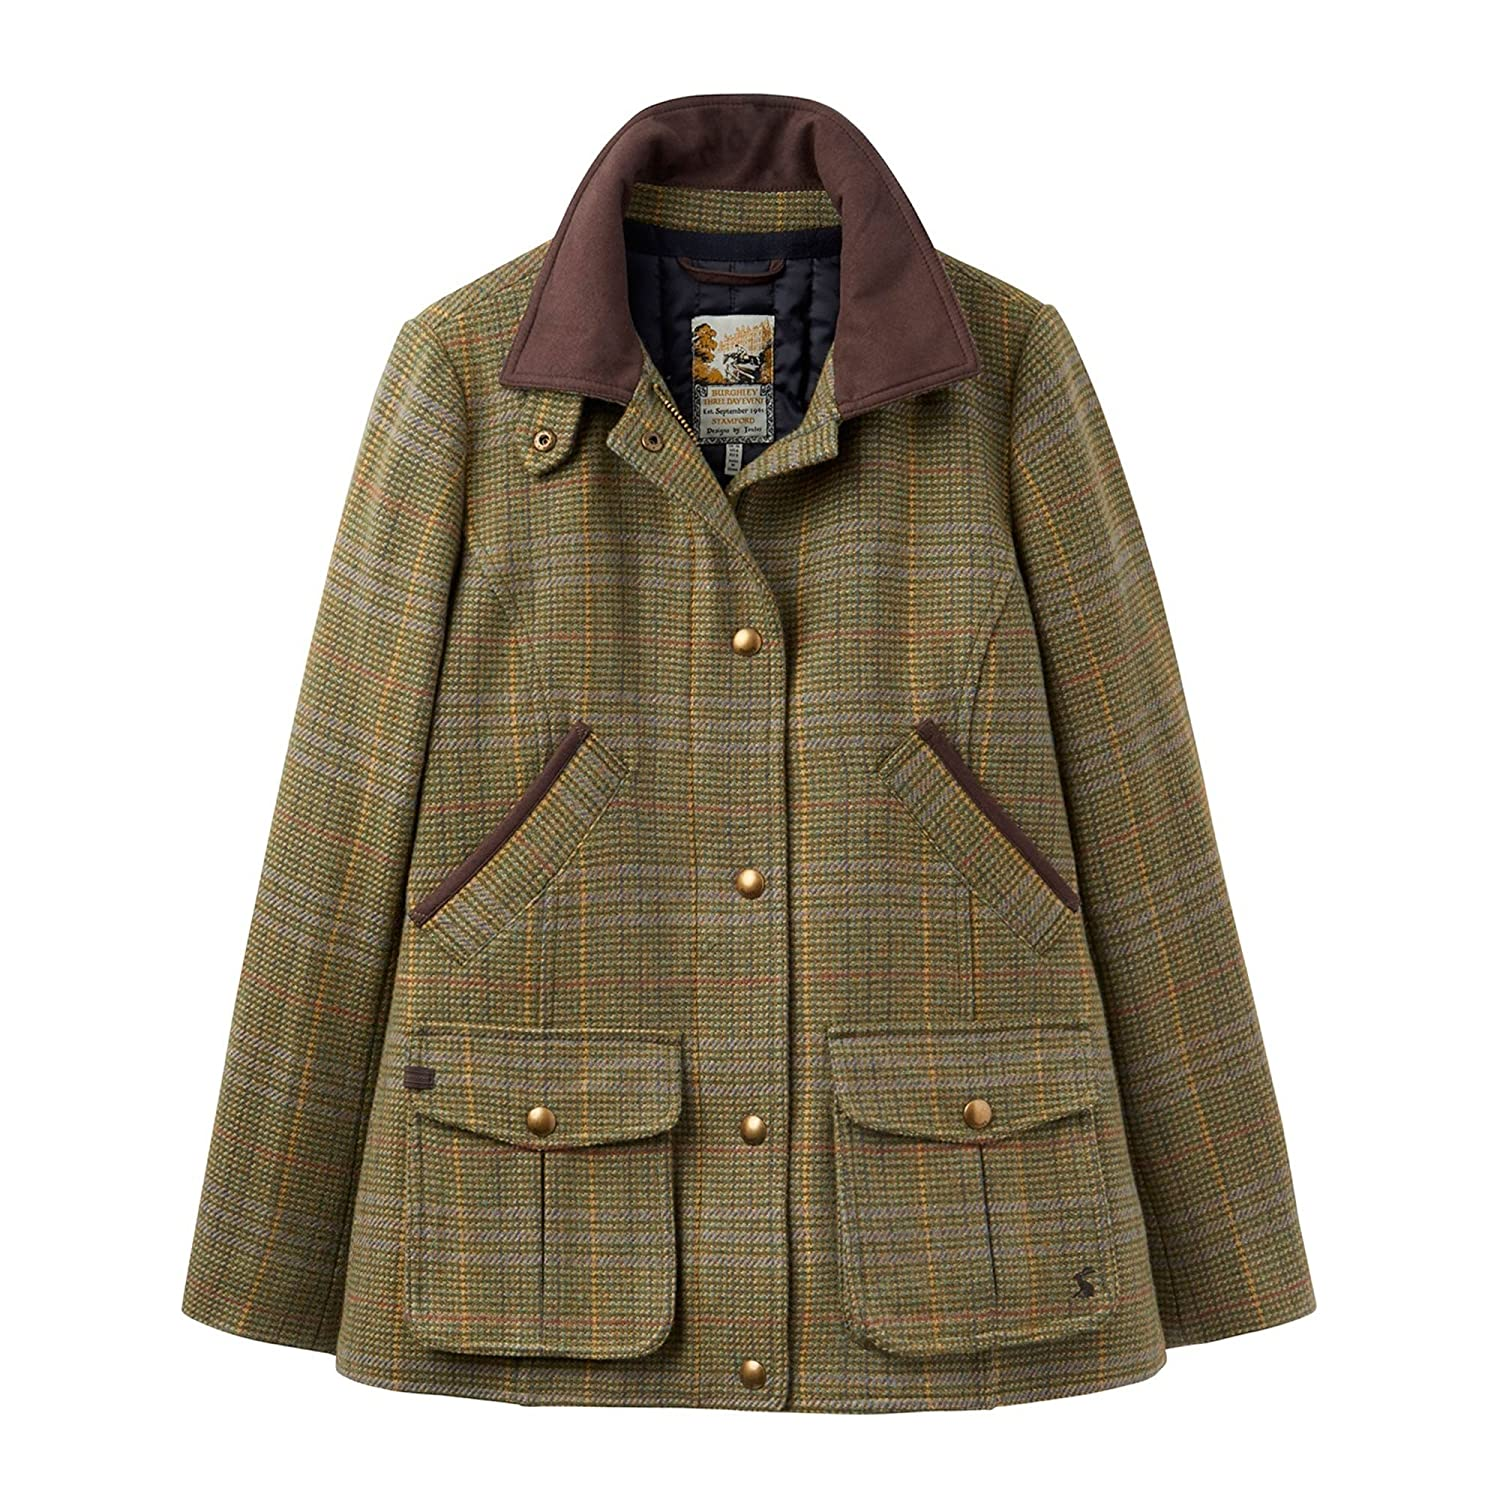 Joules Womens oficial Burghley Fieldcoat Tweed Jacket- Señor sapo, Mr Toad